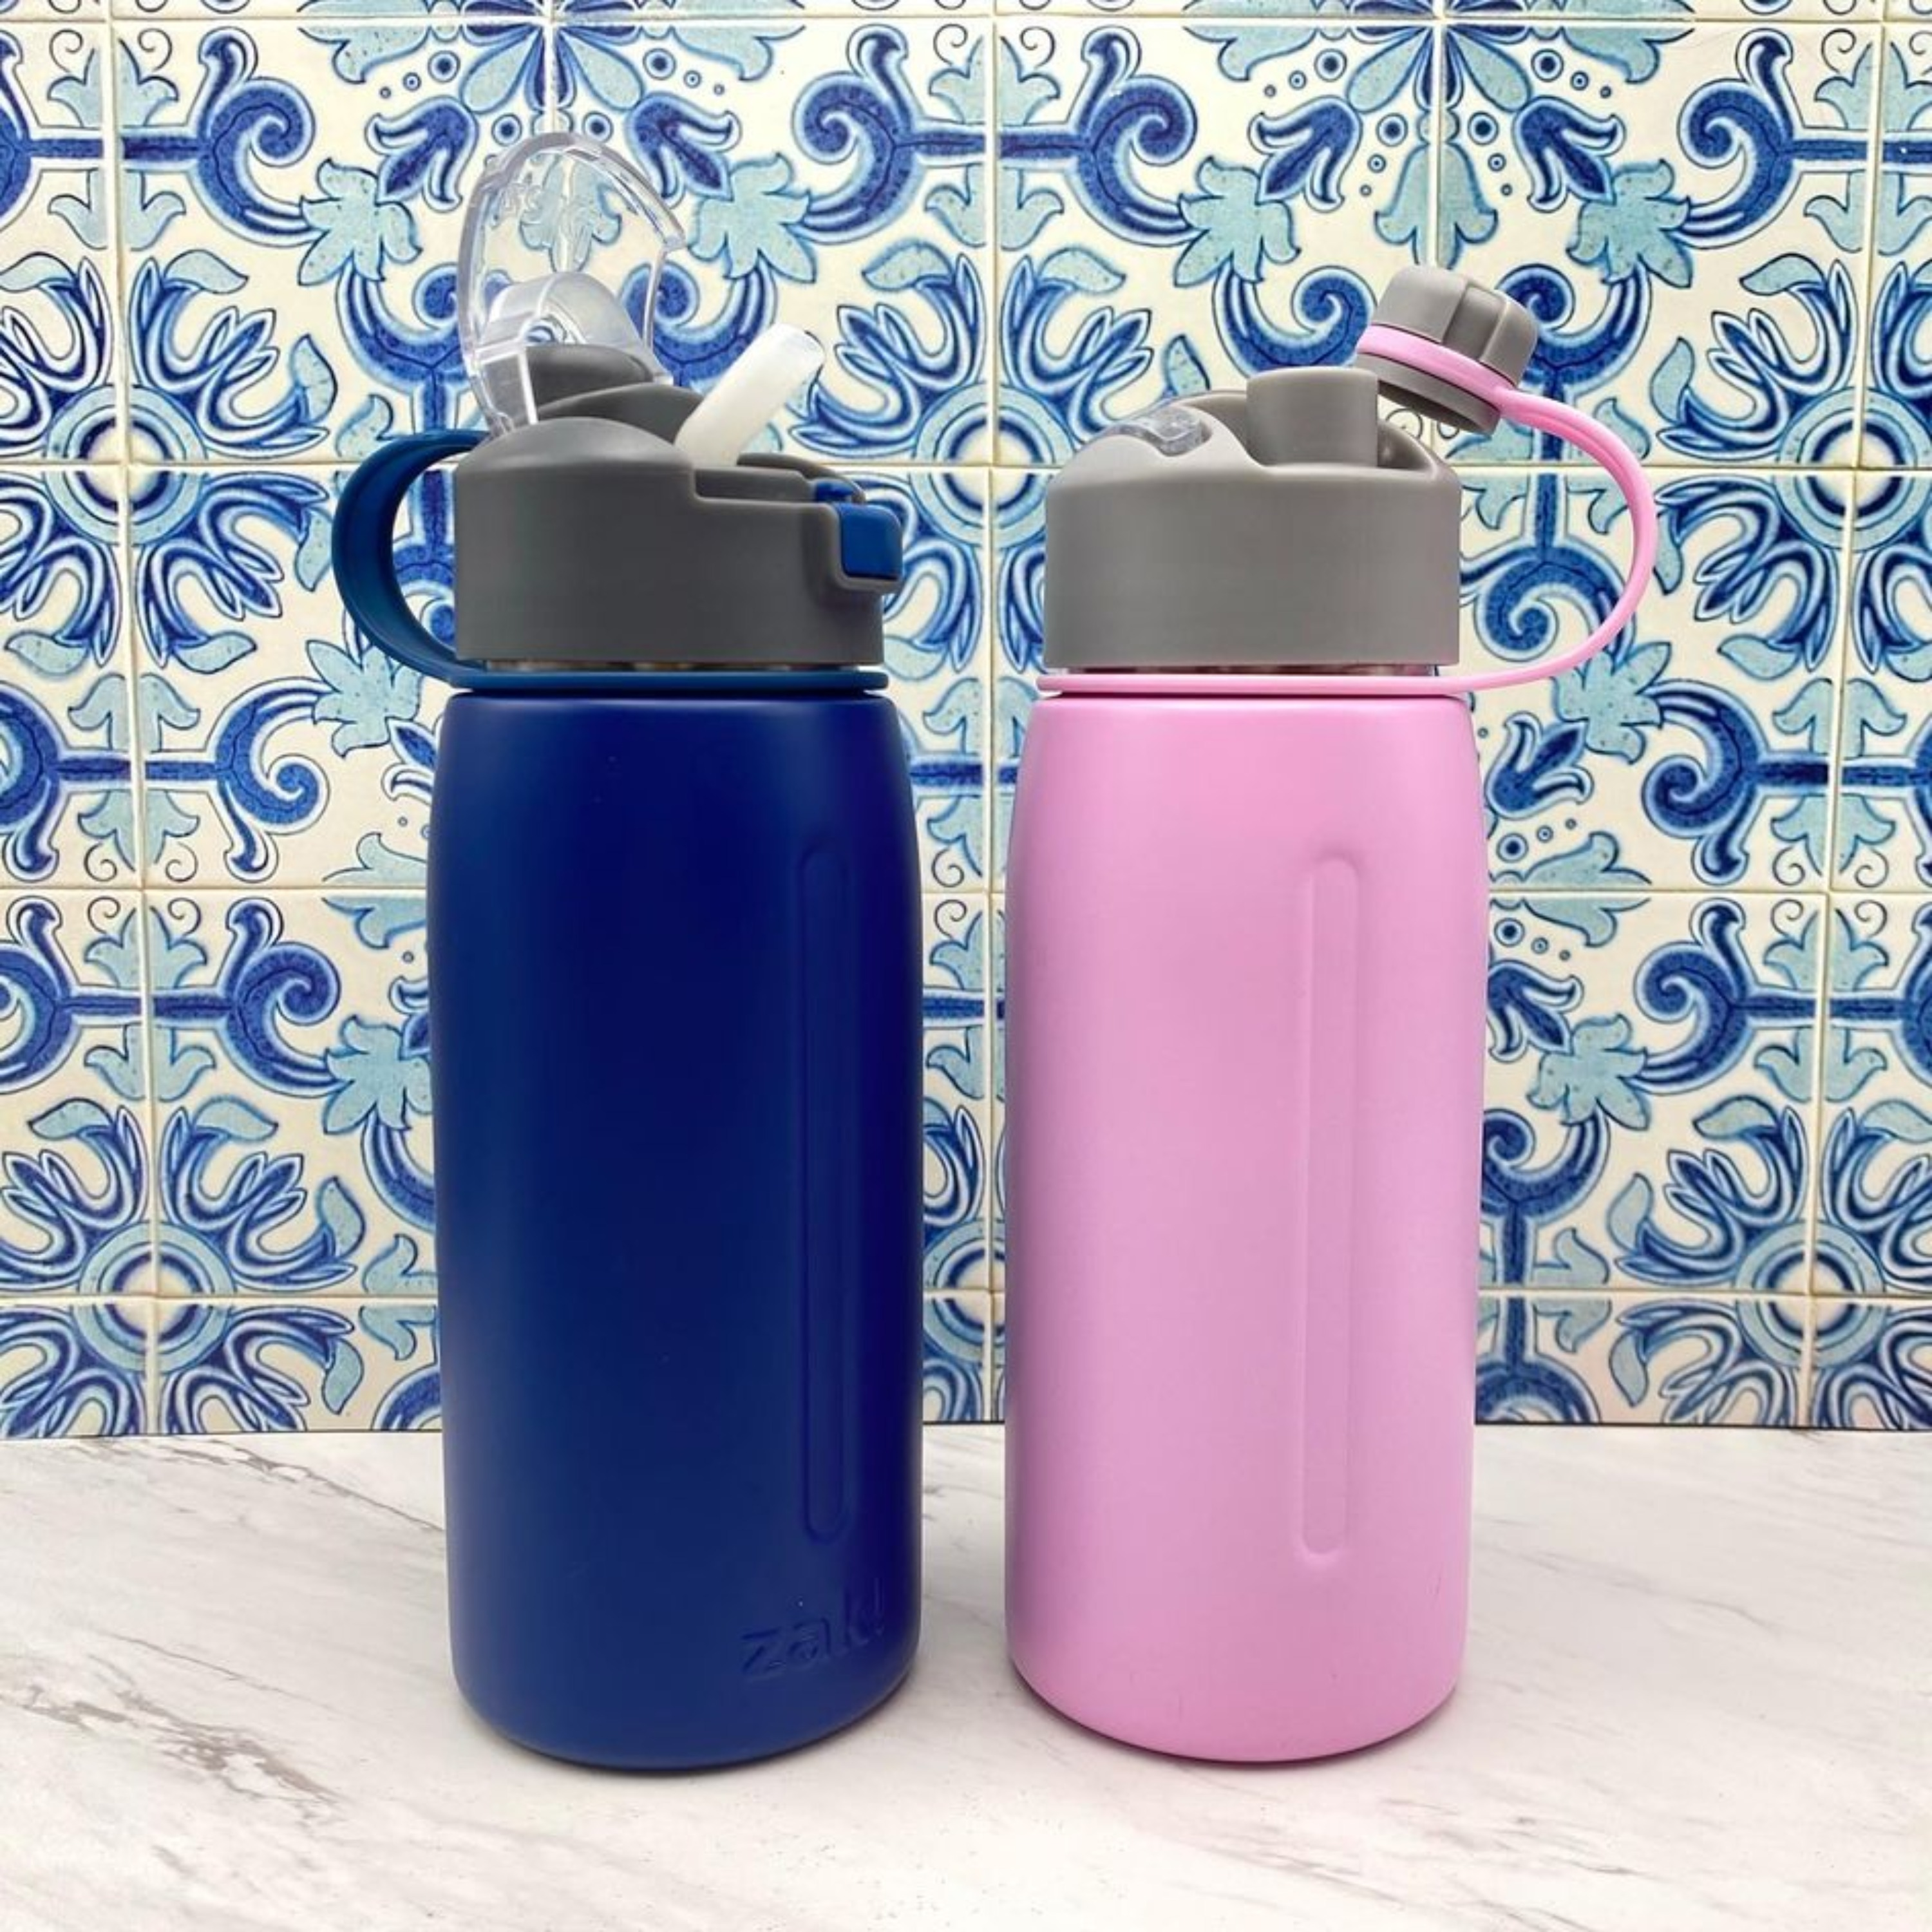 Genesis 24 ounce Vacuum Insulated Stainless Steel Tumbler, Lilac slideshow image 11